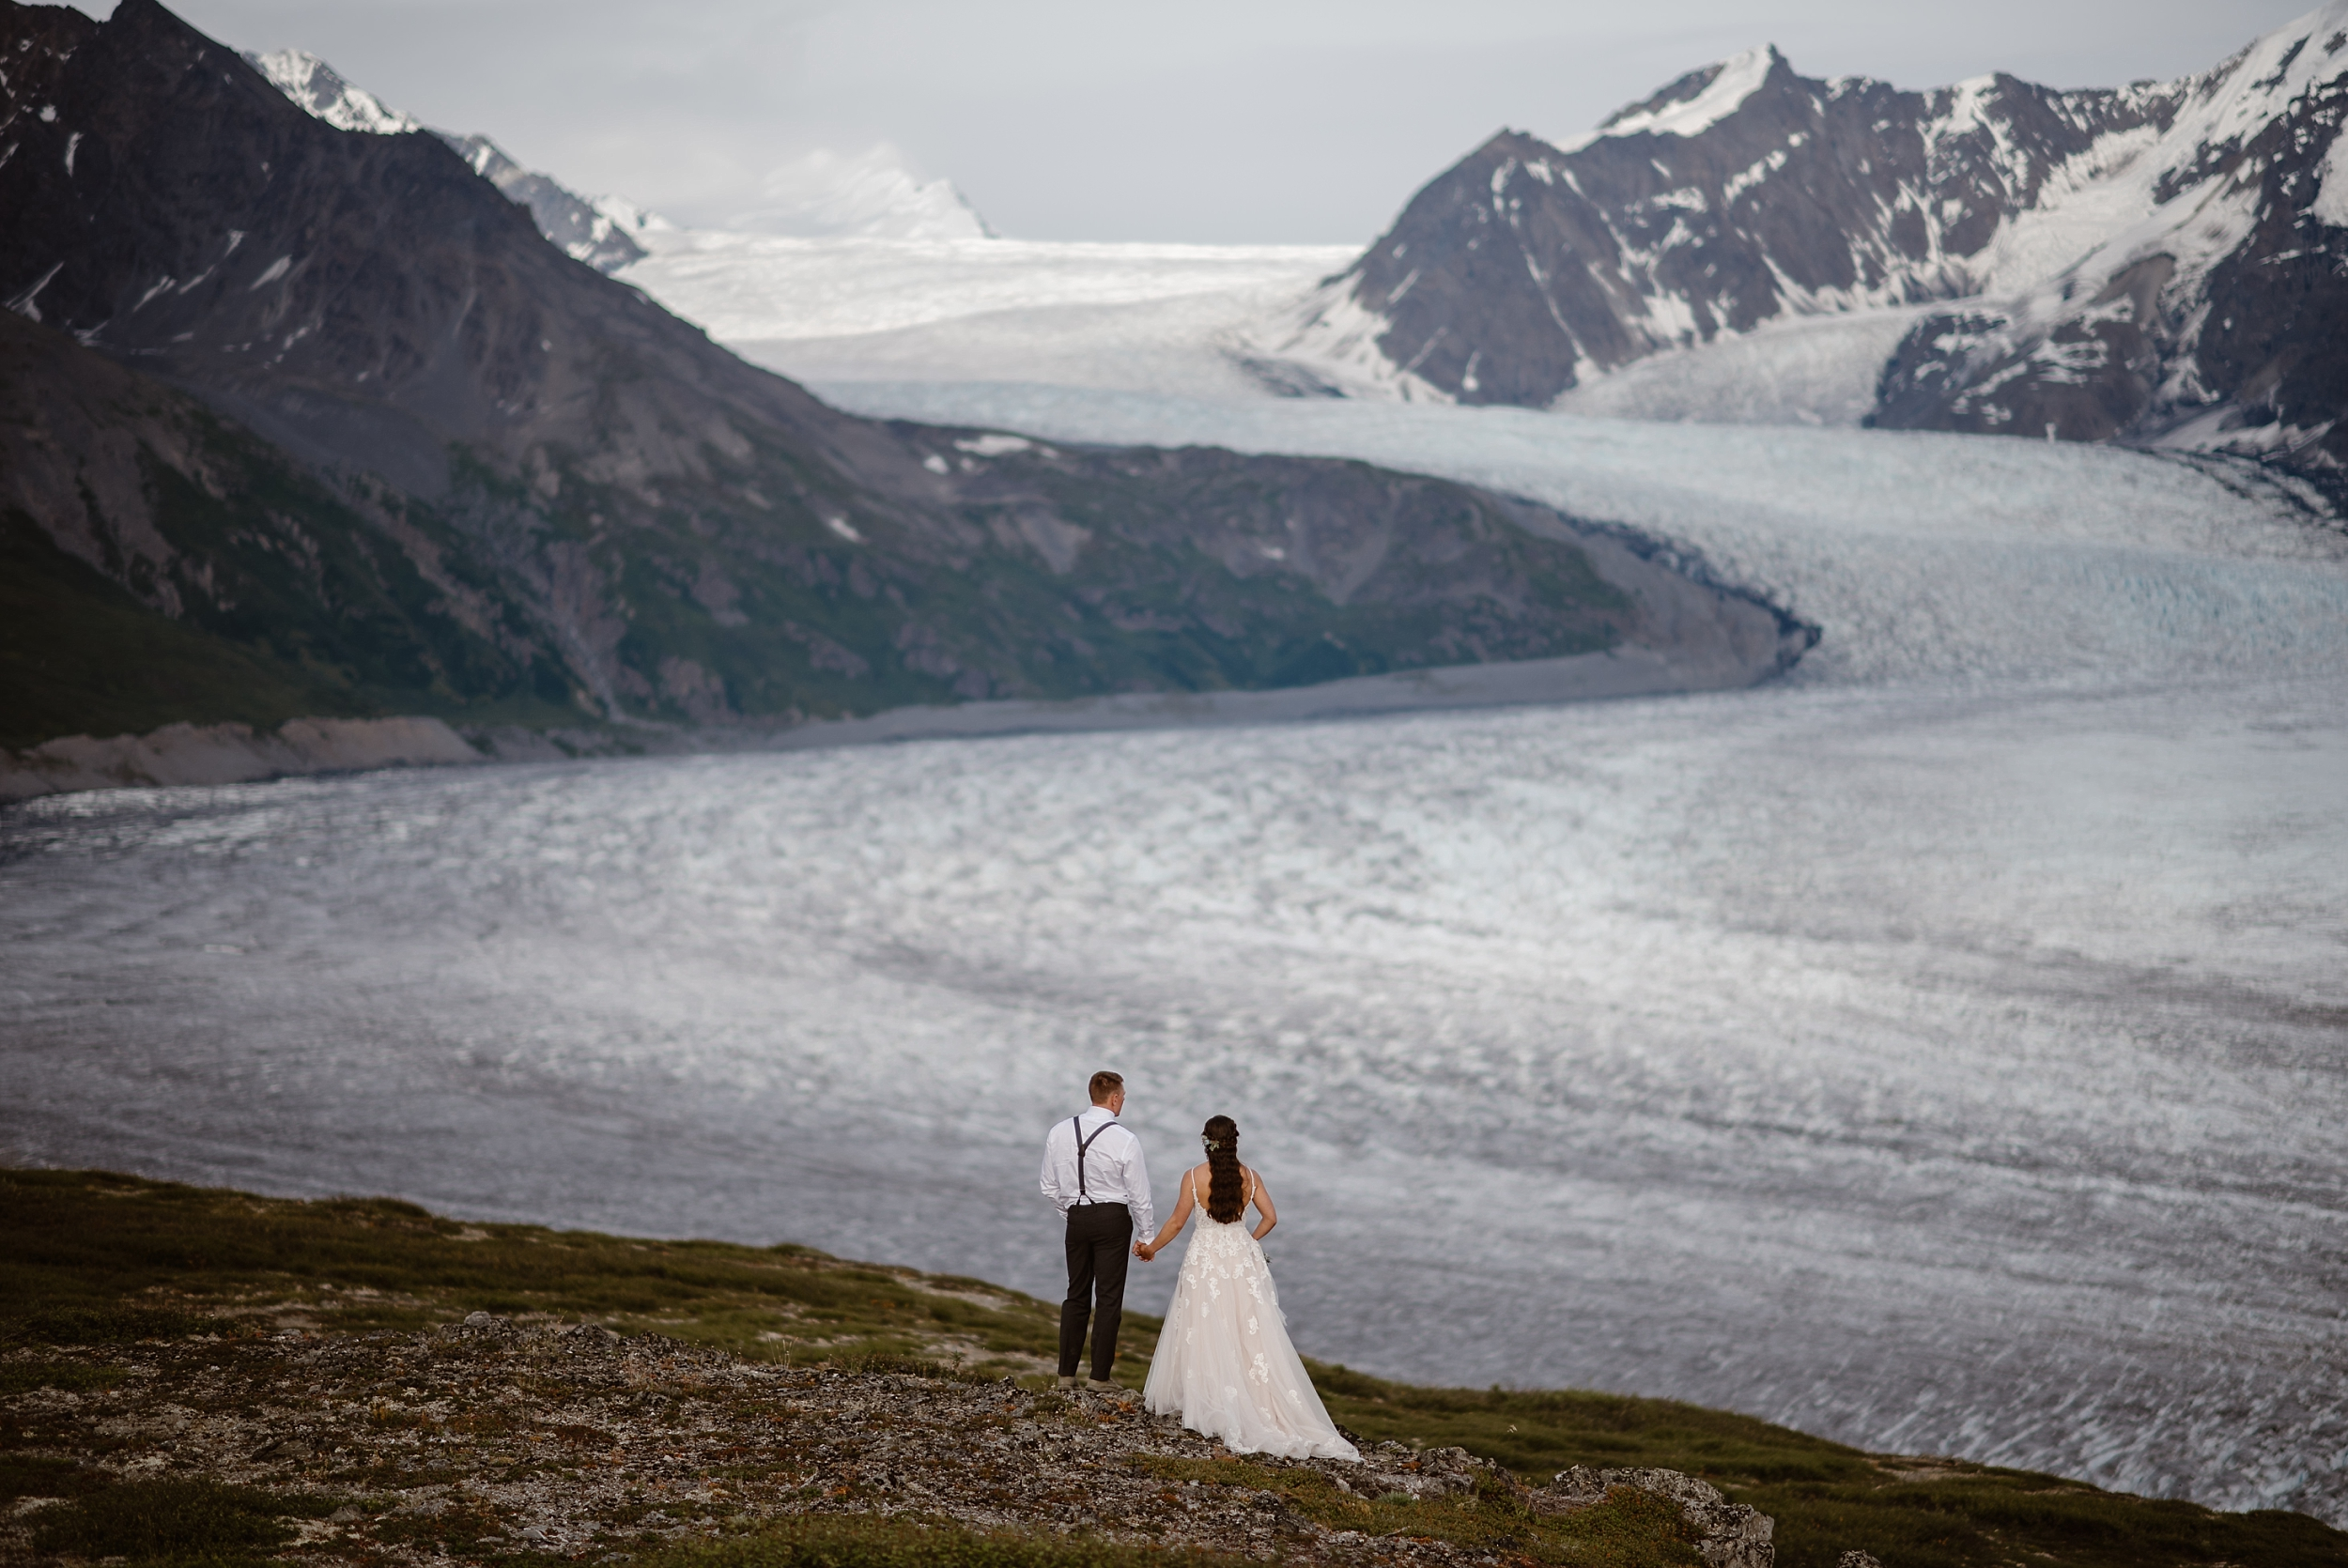 Jordyn and Connor, the bride and groom, gaze off into the distance while they stand, with their backs to the camera, on a green, rocky mountainside. In front of them is a huge glacier, and tons of glaciated peaks covered in ice and snow. These are features that Jordyn and Connor both wanted for their elopement photos and as a big part of their destination elopement.